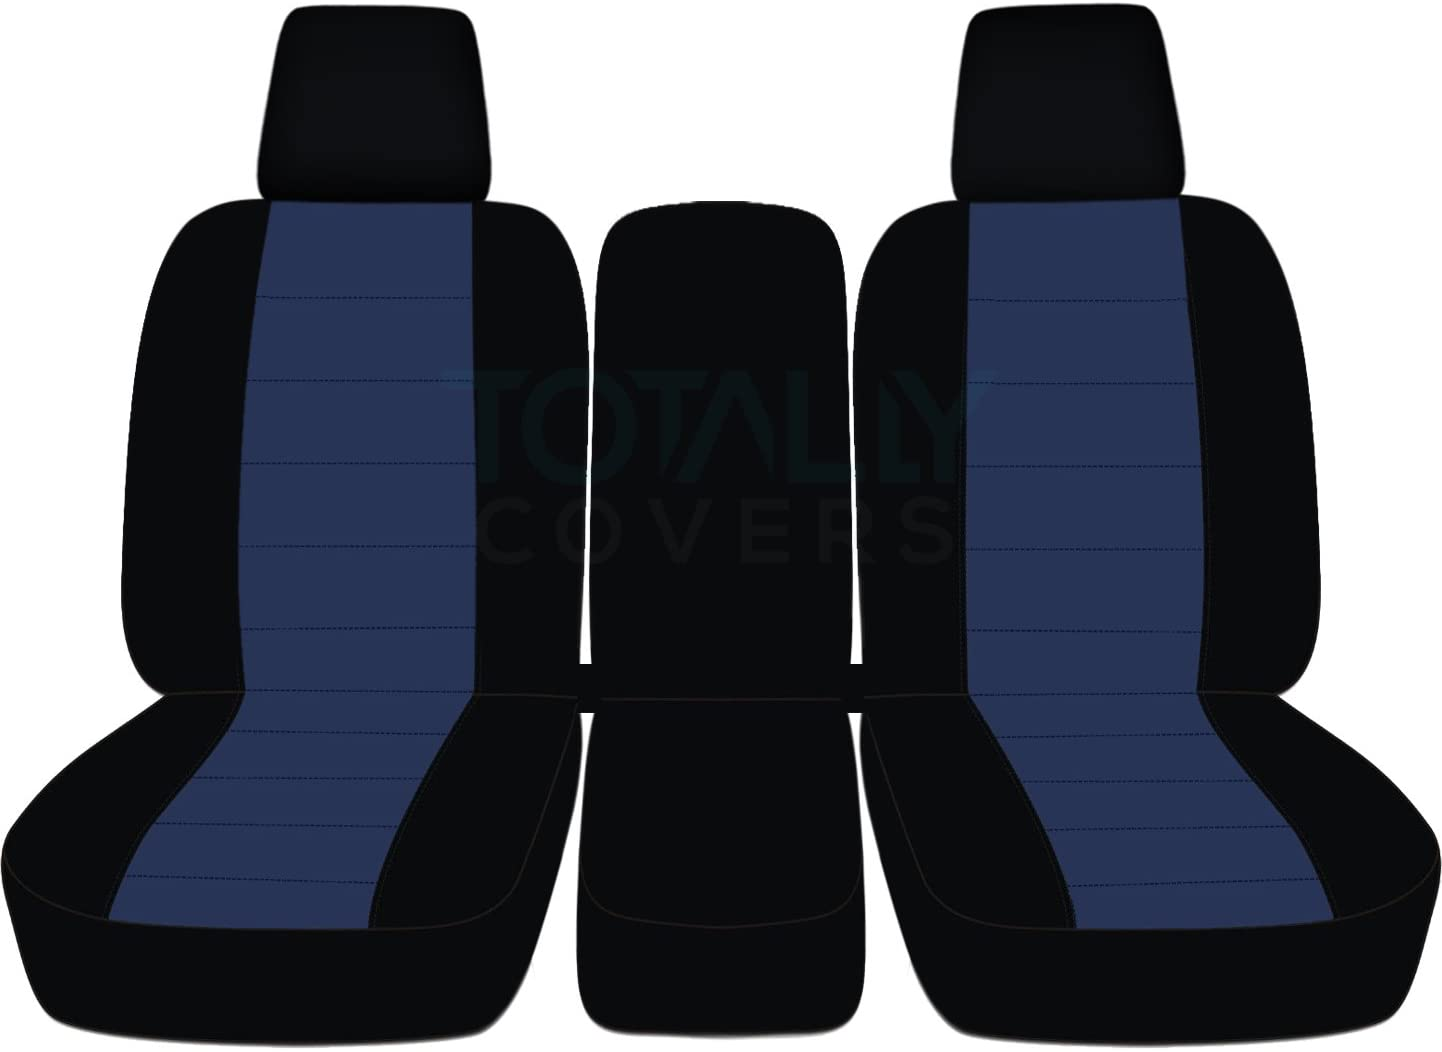 Totally Covers Compatible with 2004-2008 Ford F-150 Two-Tone Truck Seat Covers (Front 40/20/40 Split Bench) w Center Console/Armrest, w/wo Integrated Seat Belts: Black & Navy Blue F-Series F150